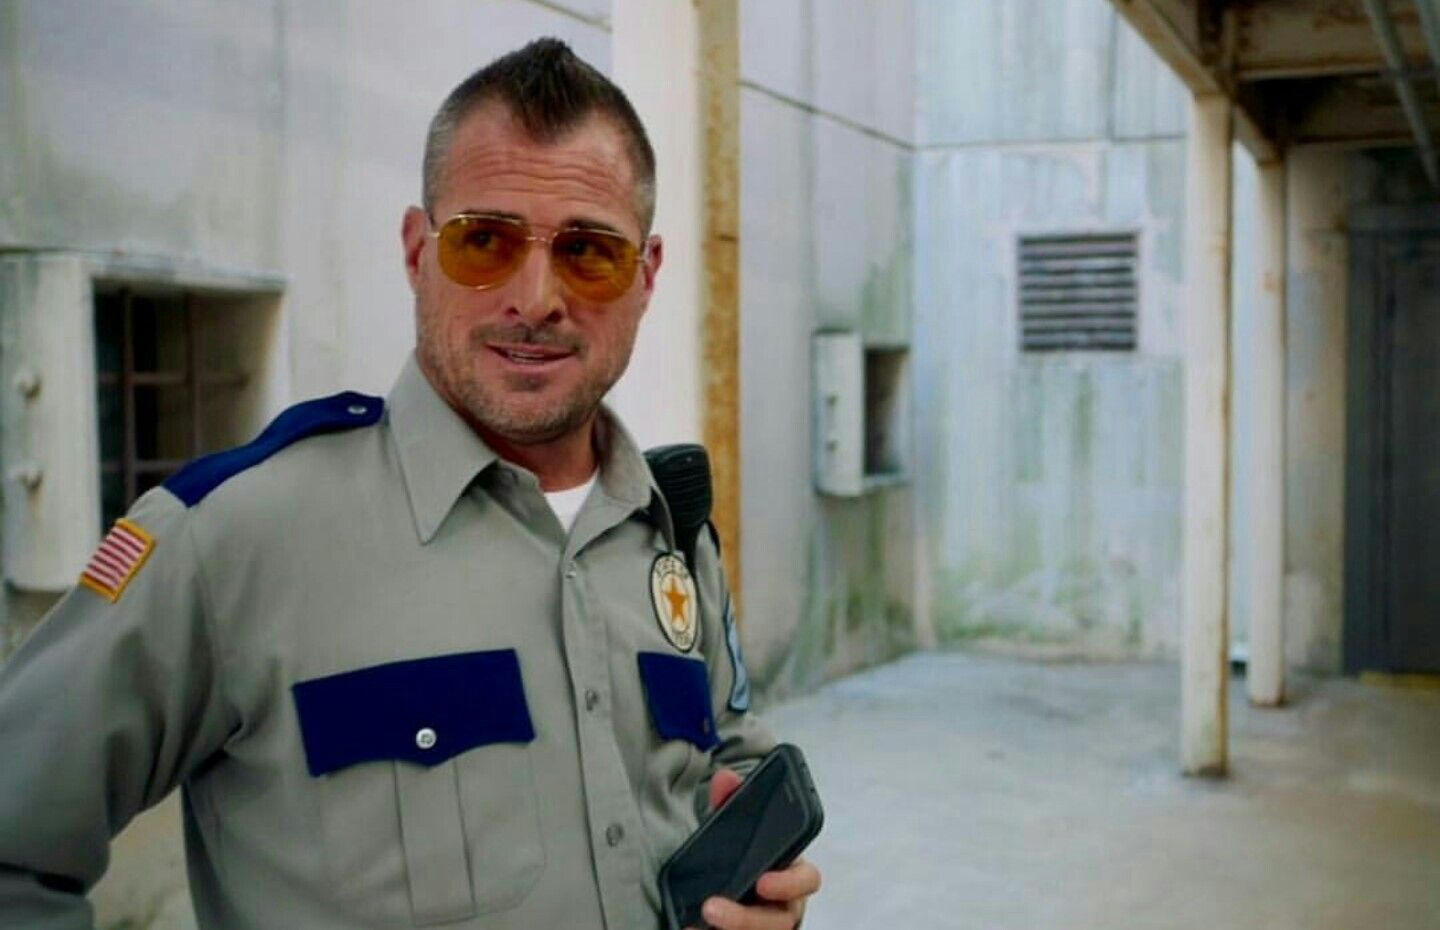 George Eads as Jack Dalton in the reboot of MacGyver 1x07 Looks good in uniform